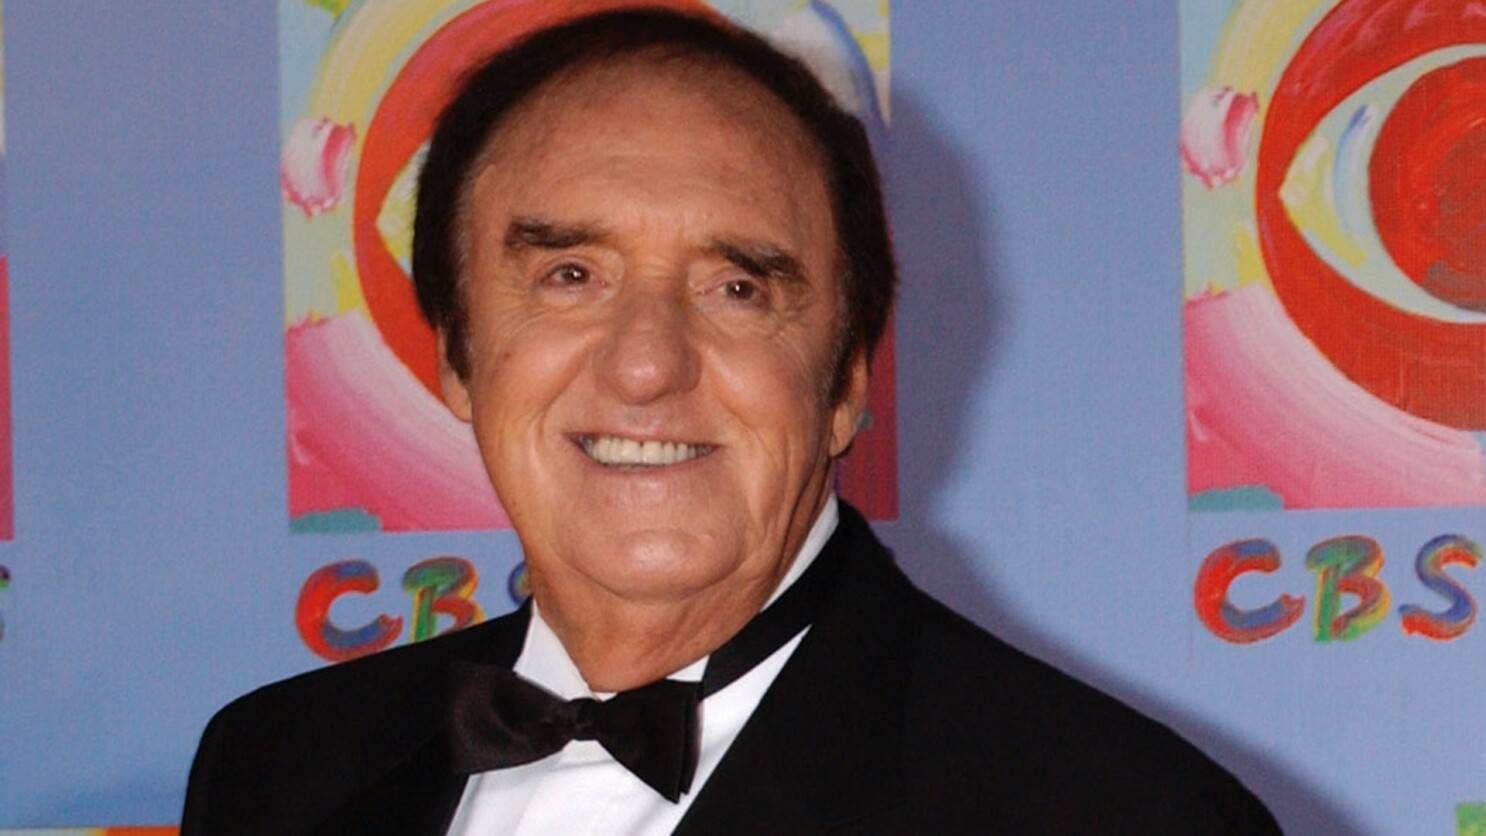 Jim Nabors Tv S Homespun Gomer Pyle And Singer Dies At 87 Los Angeles Times Stan cadwallader came into the spotlight following his marriage to the famous comedian and actor stan cadwallader was born in the united states in the year 1948. jim nabors tv s homespun gomer pyle